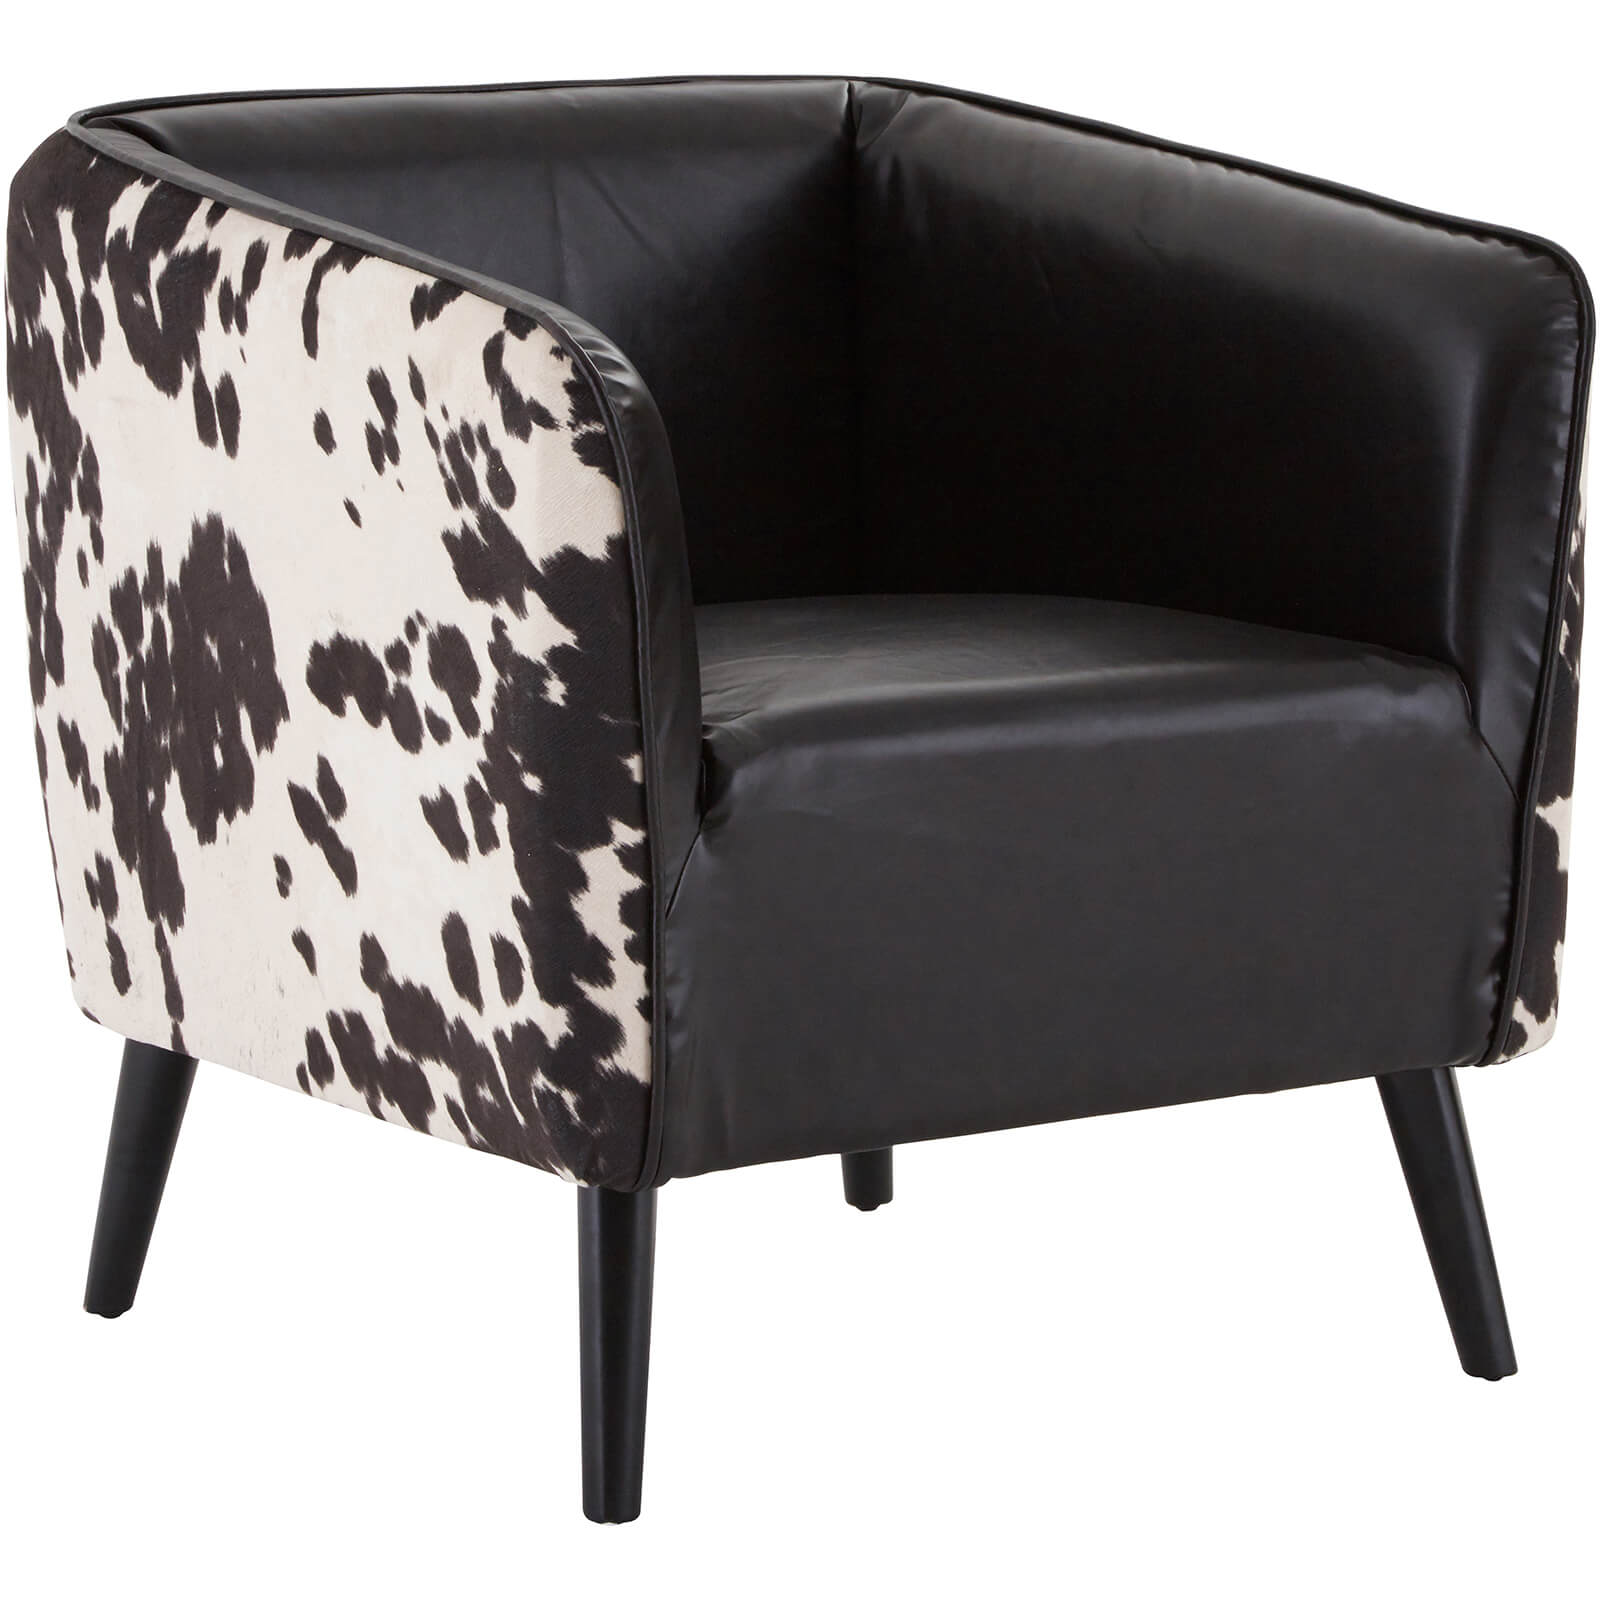 Fifty Five South Rodeo Black Leather Effect Chair Black White Cowhide